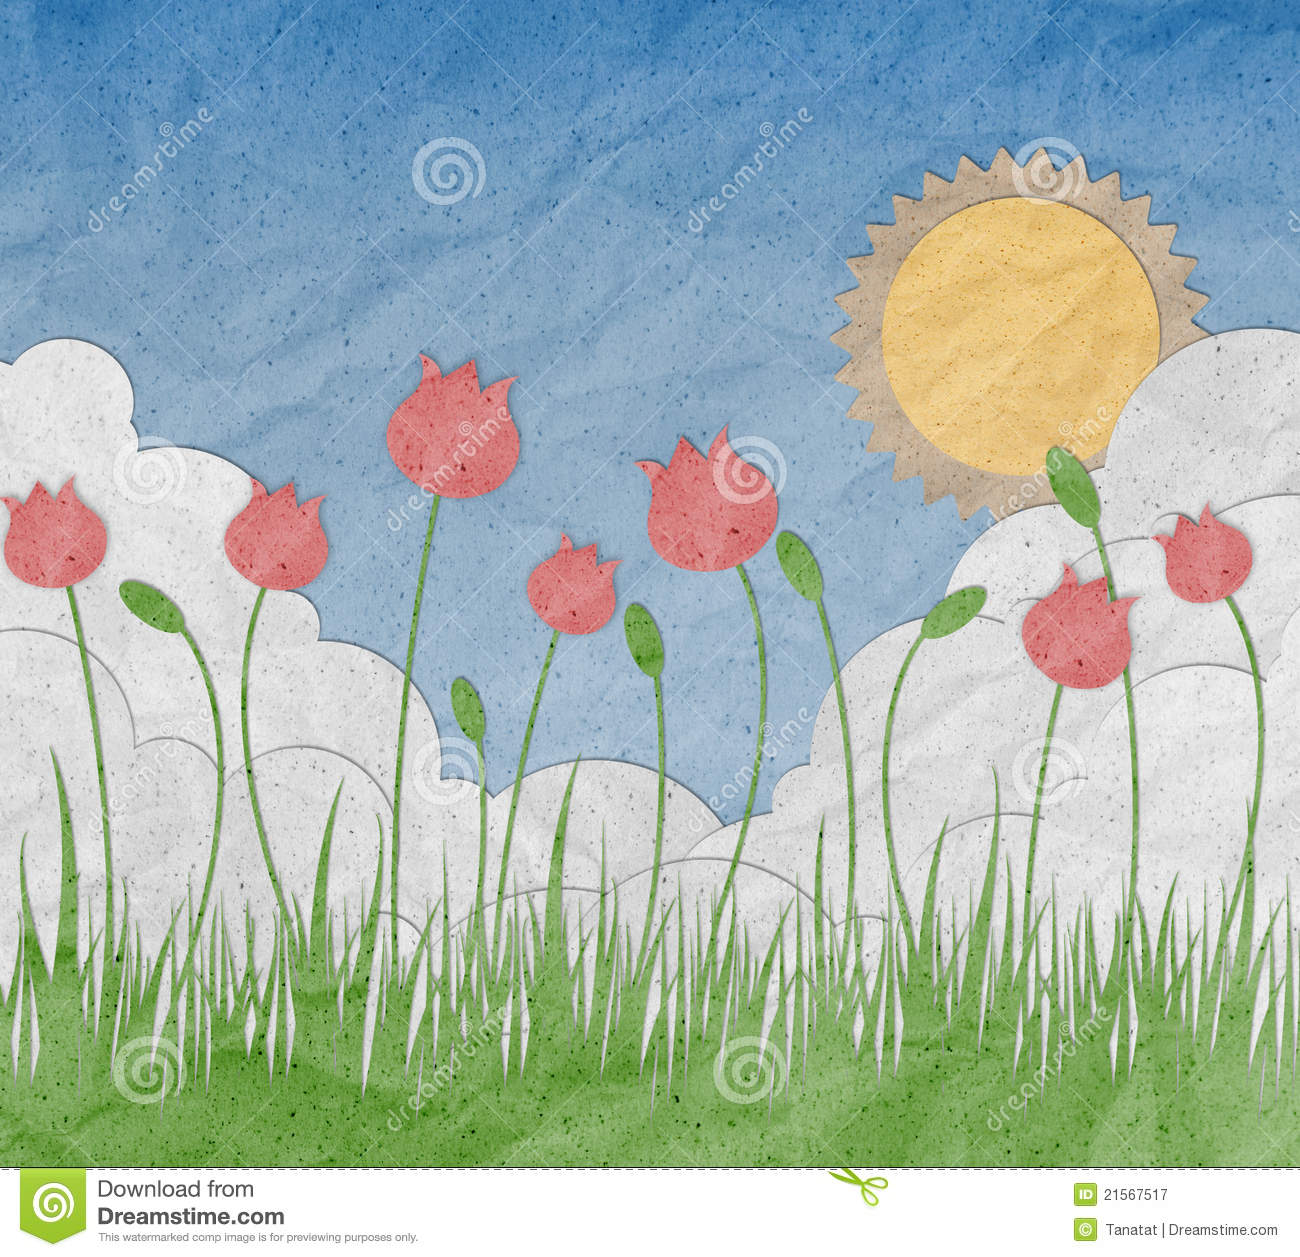 Flower Garden Made From Recycled Paper Craft Royalty Free Stock